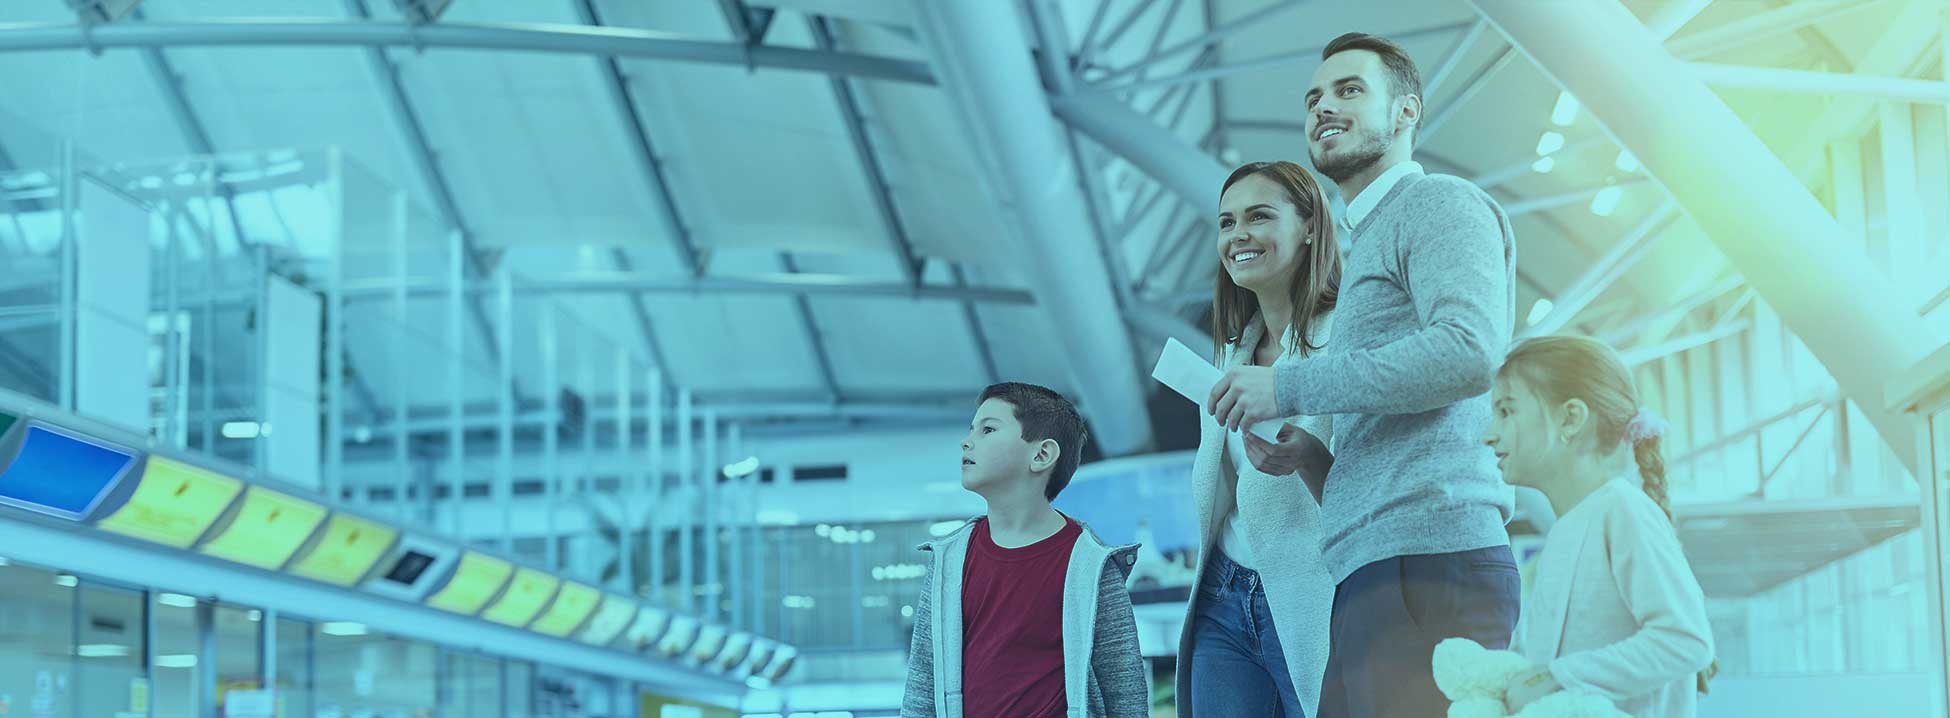 Family at departure airport passenger flow management